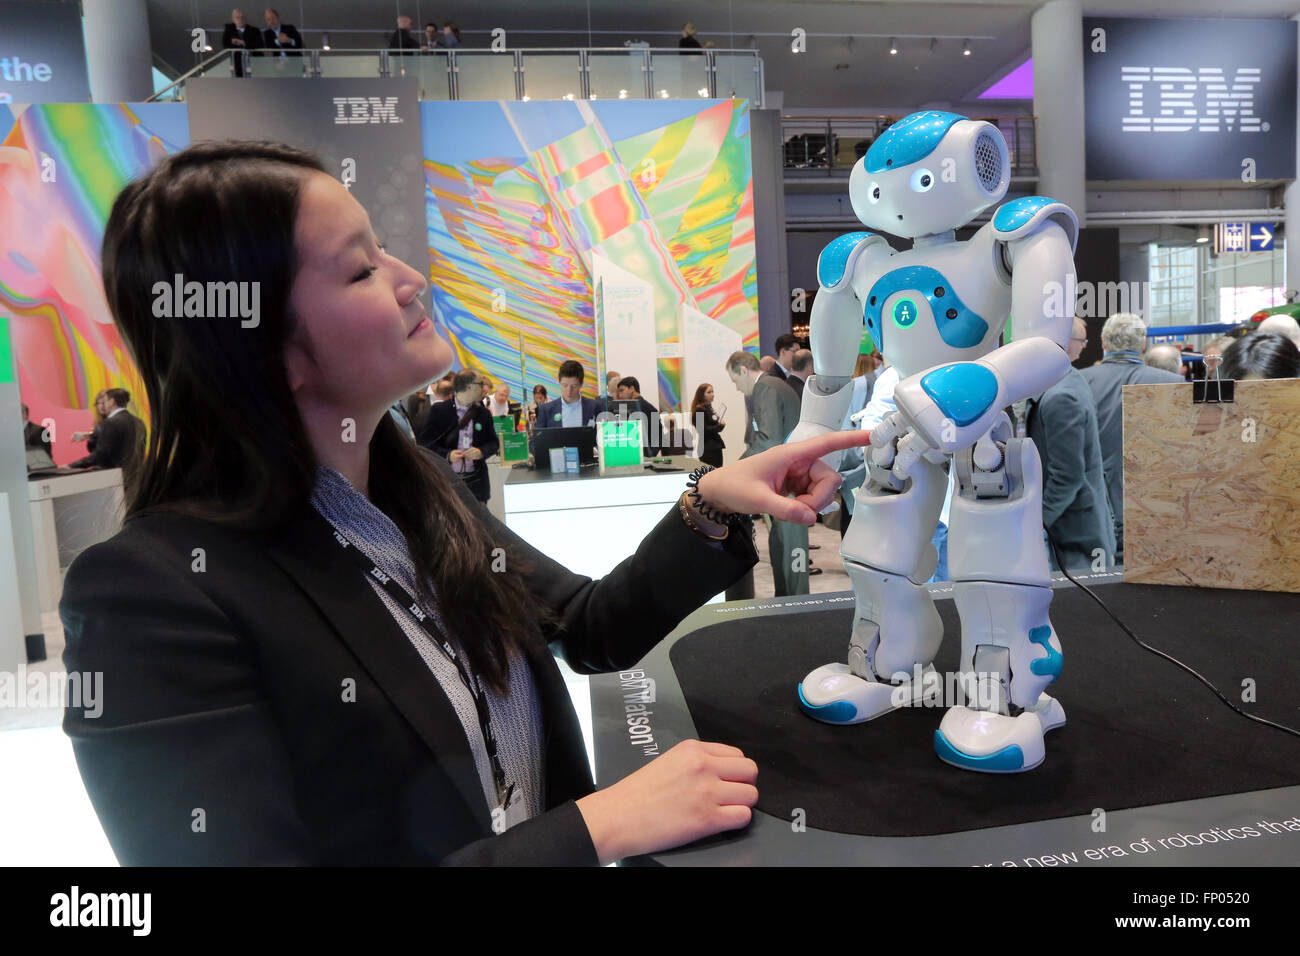 A stand hostess touches a NAO Watson robot at the IBM stand at the 2016 CeBIT digital technology trade fair in Hannover, - Stock Image